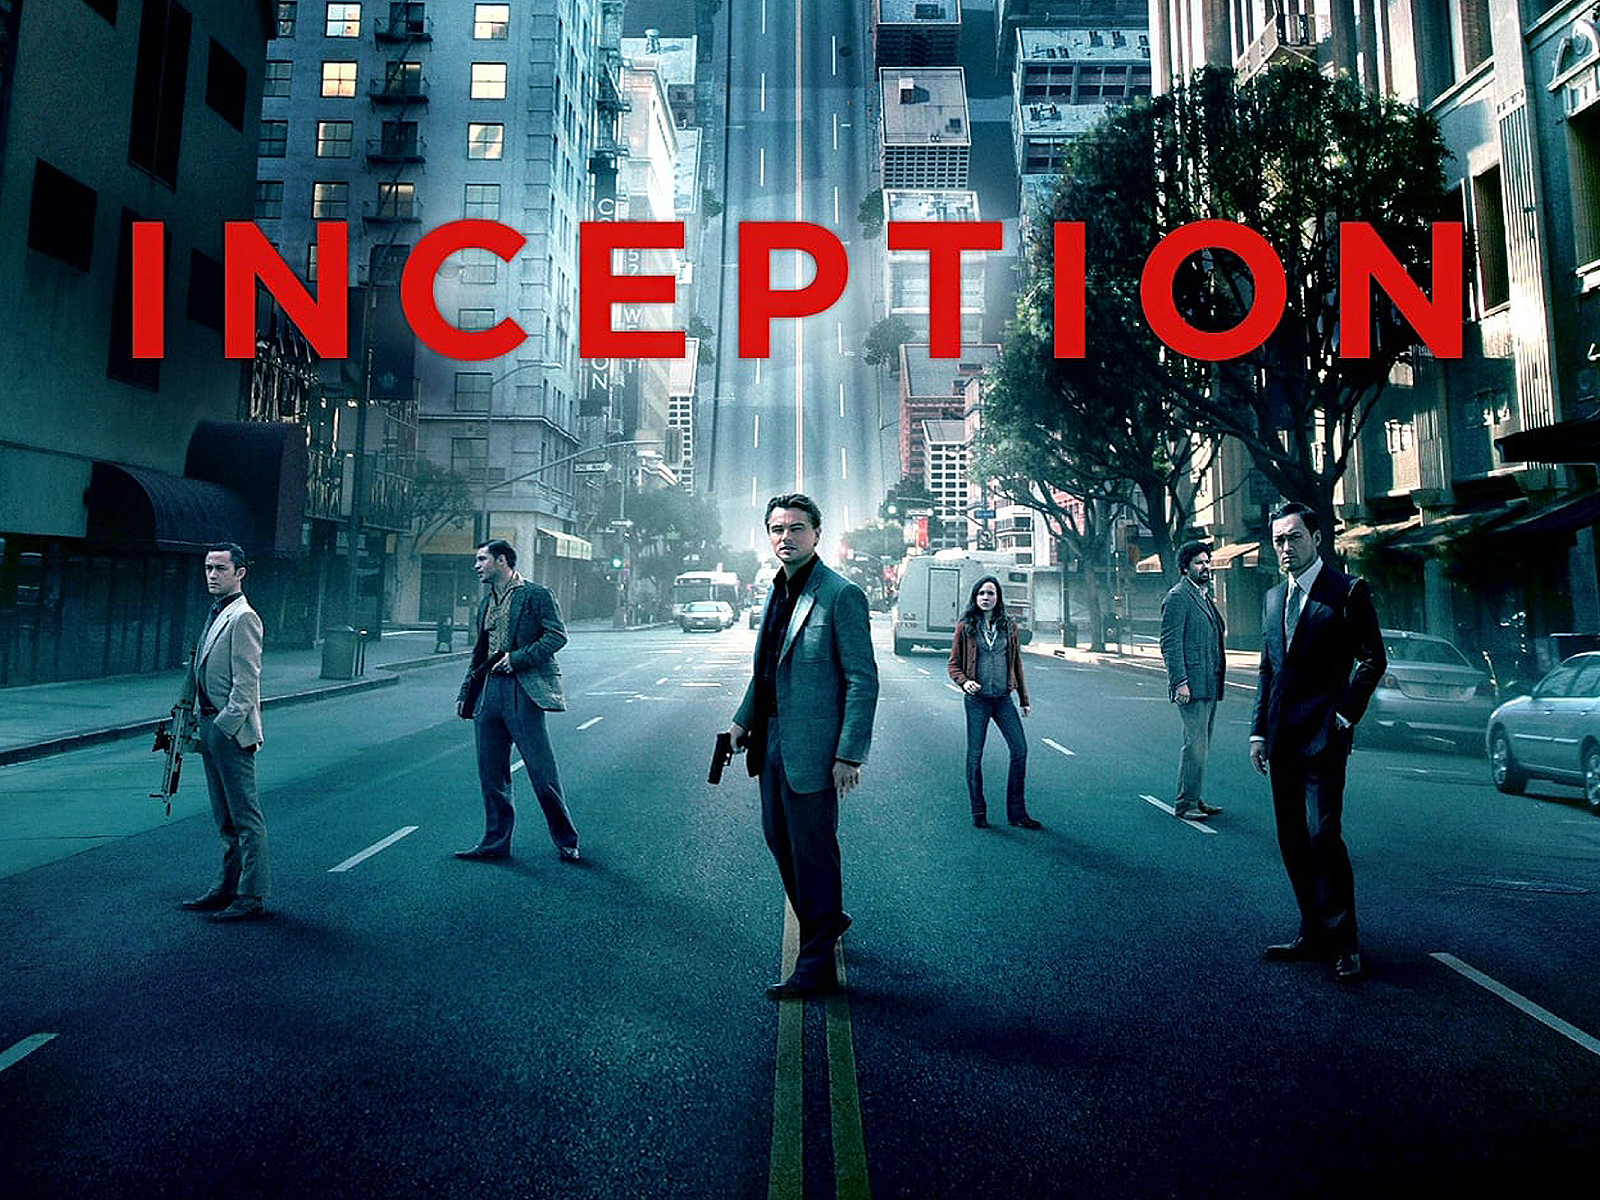 A stunning psychological sci-fi action film from visionary filmmaker Christopher Nolan (Memento, The Dark Knight)